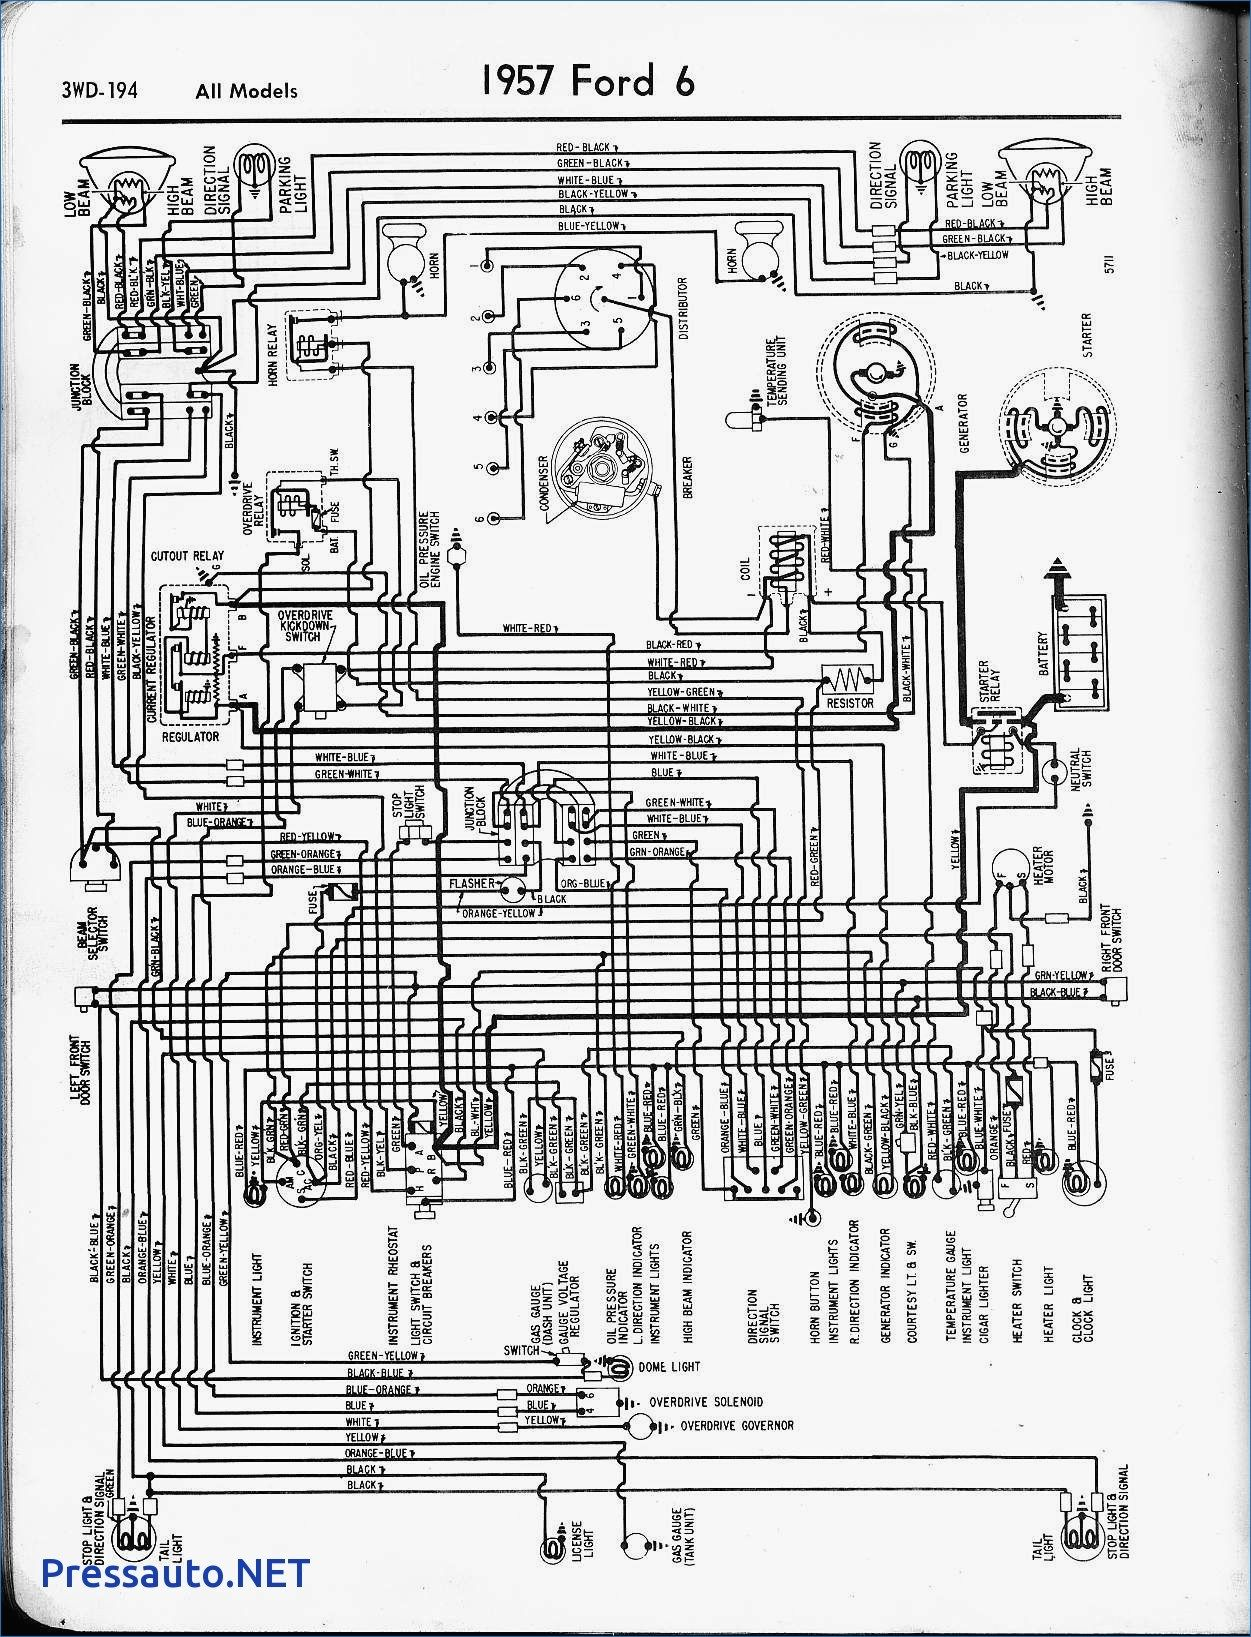 Ford Truck Steering Diagram Reveolution Of Wiring 4t45e Peugeot 307 Power Pressauto Net In On Rh Pinterest Com Components